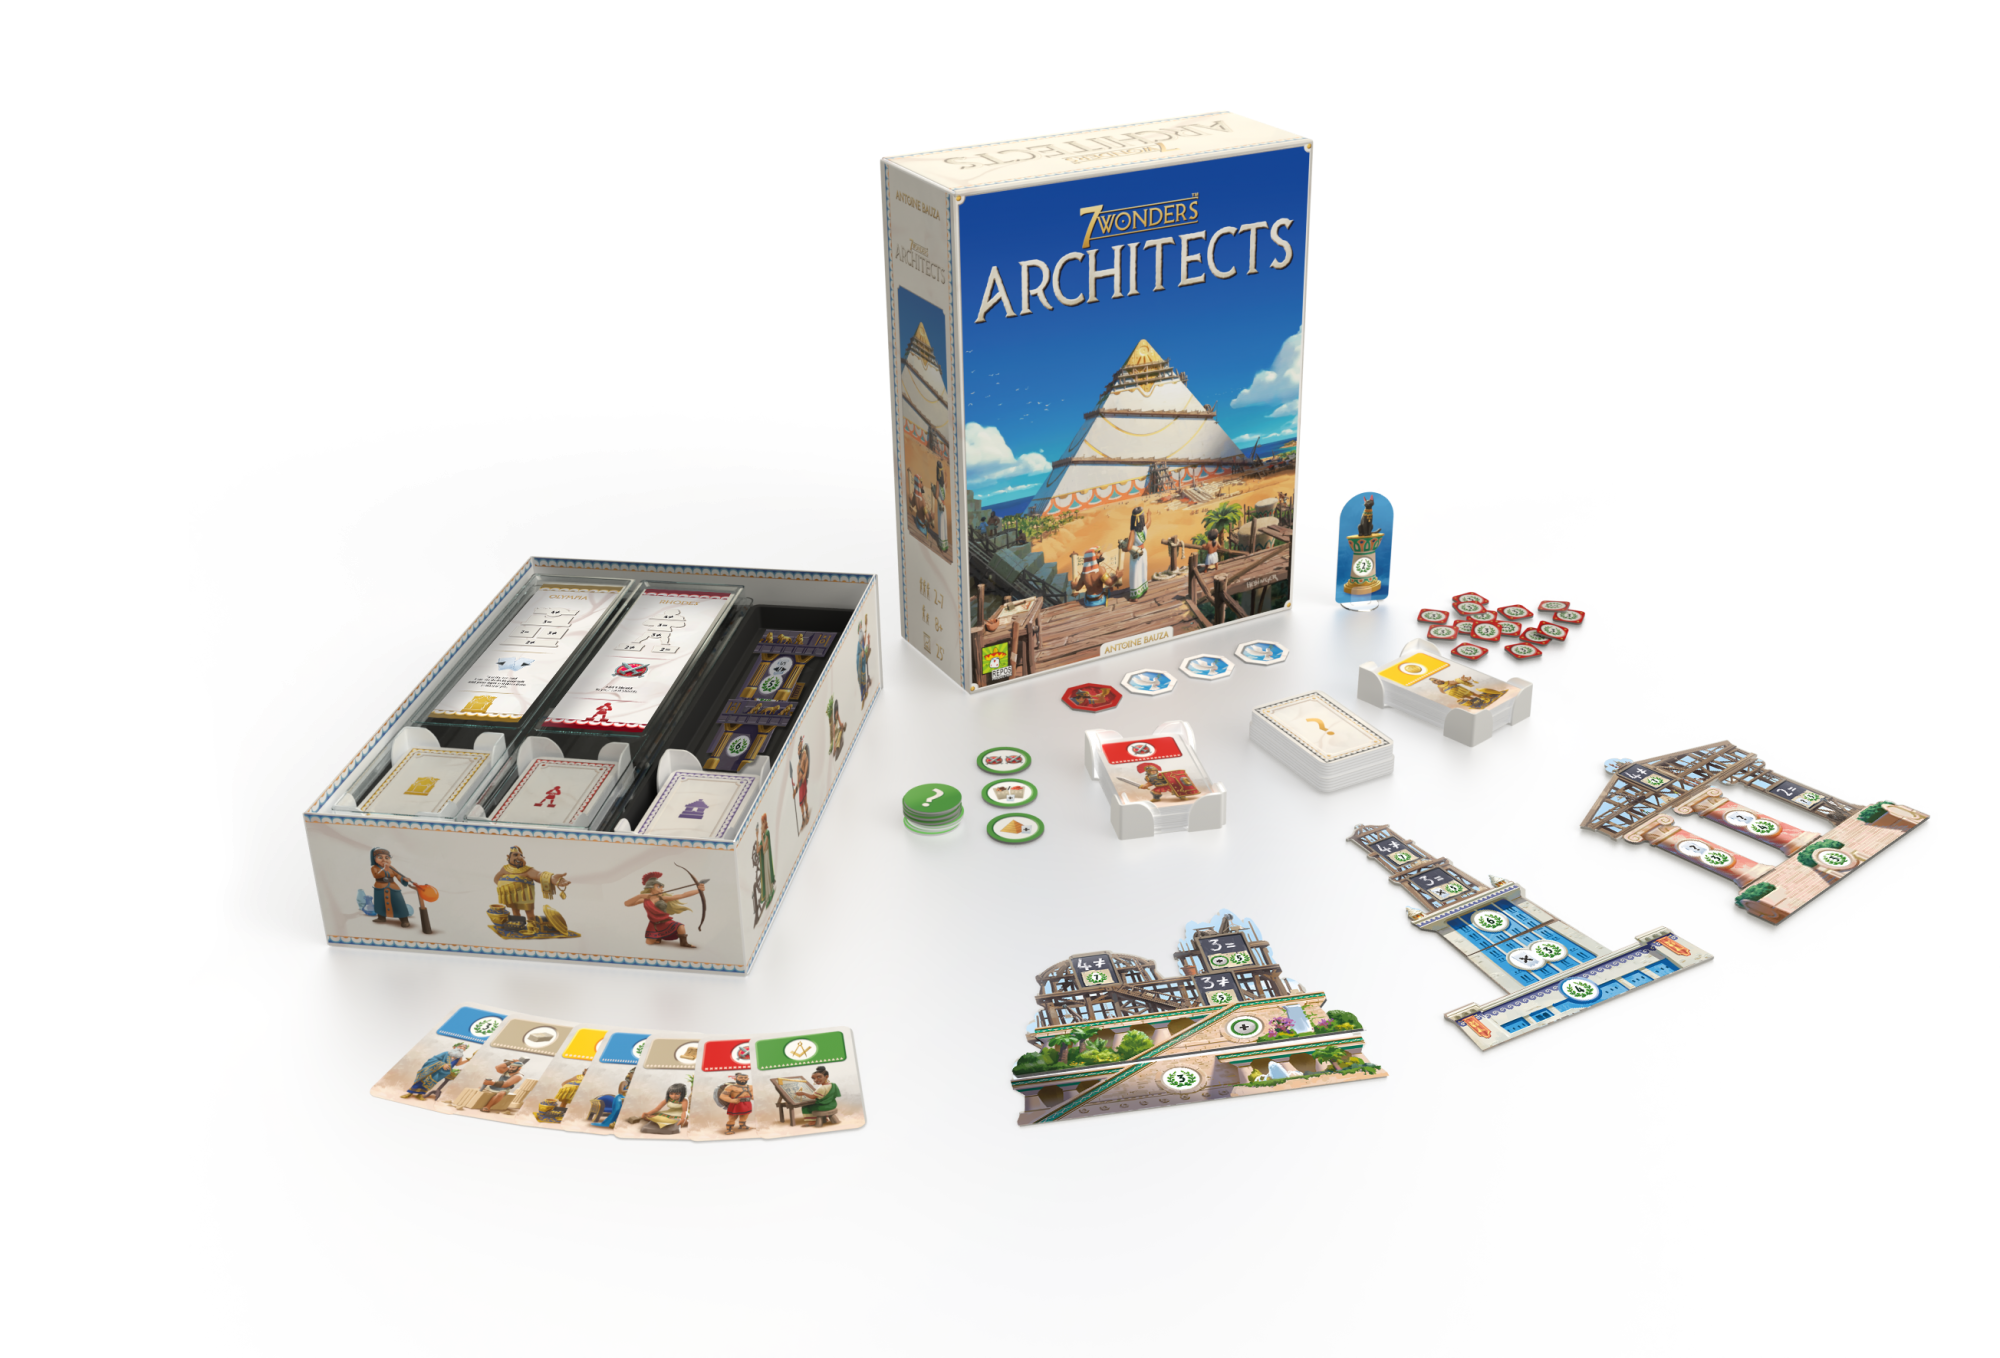 PREORDER - 7 Wonders - Architects